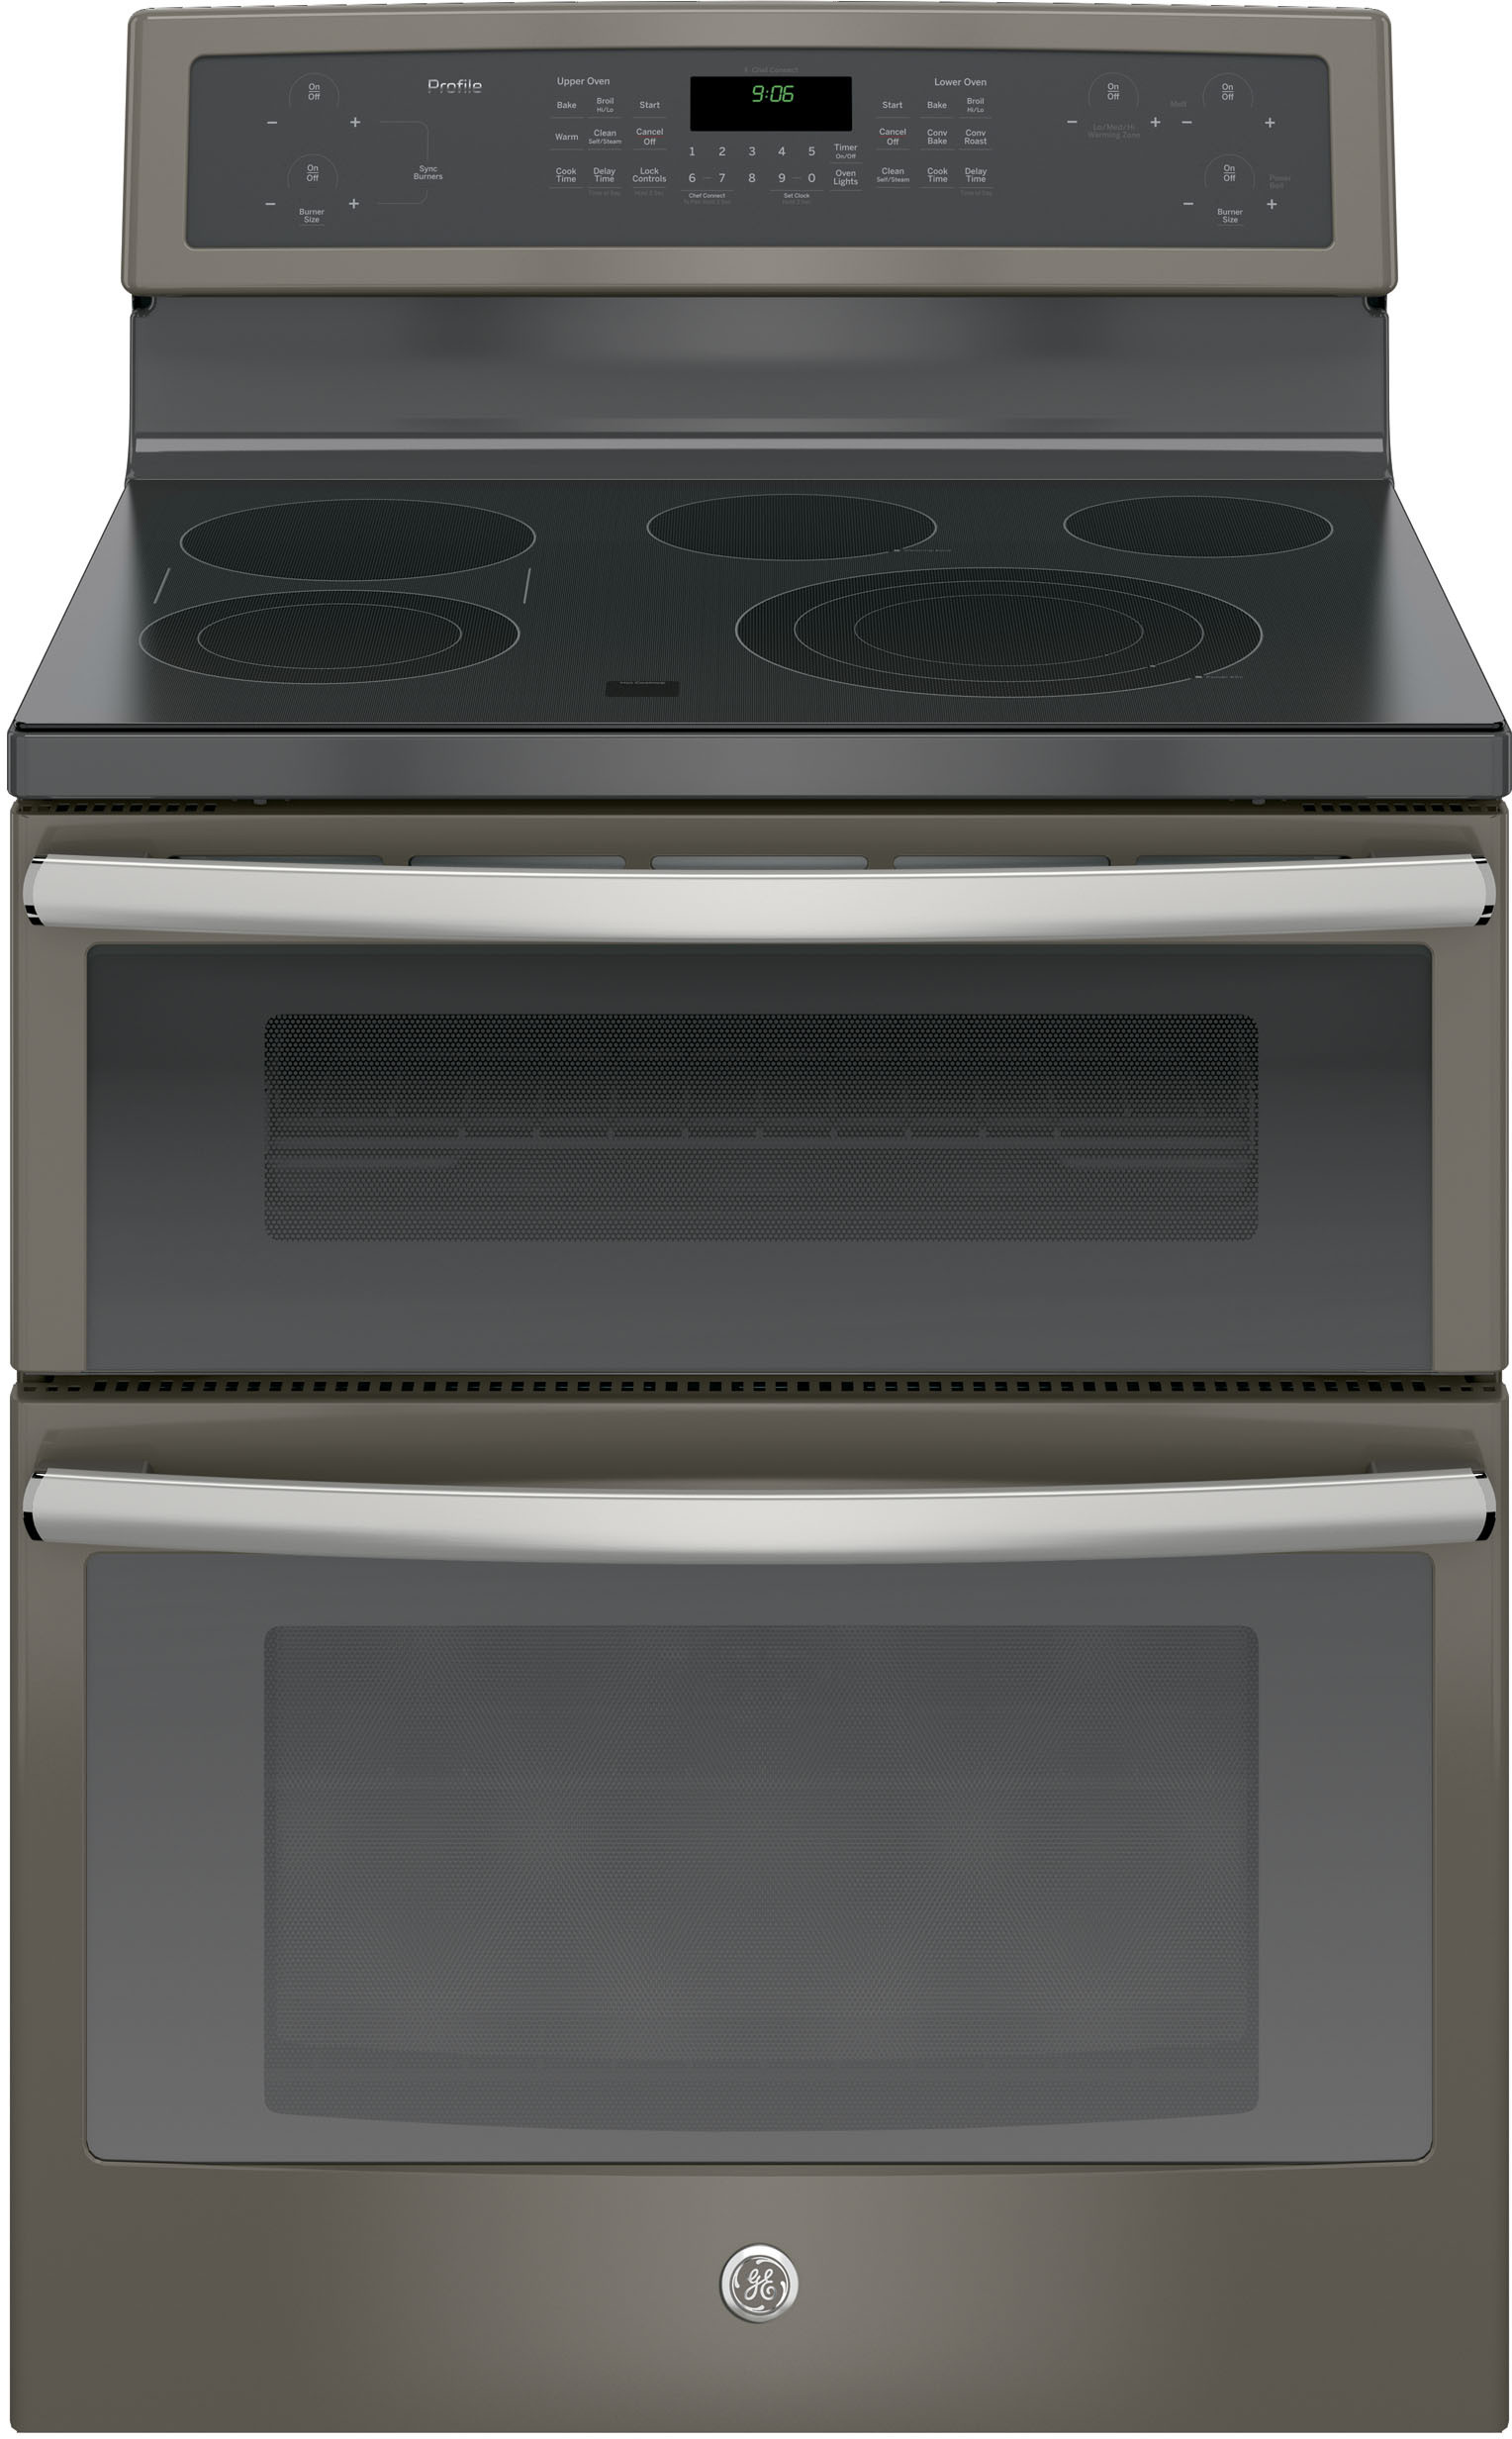 Inch Freestanding Double Oven Electric